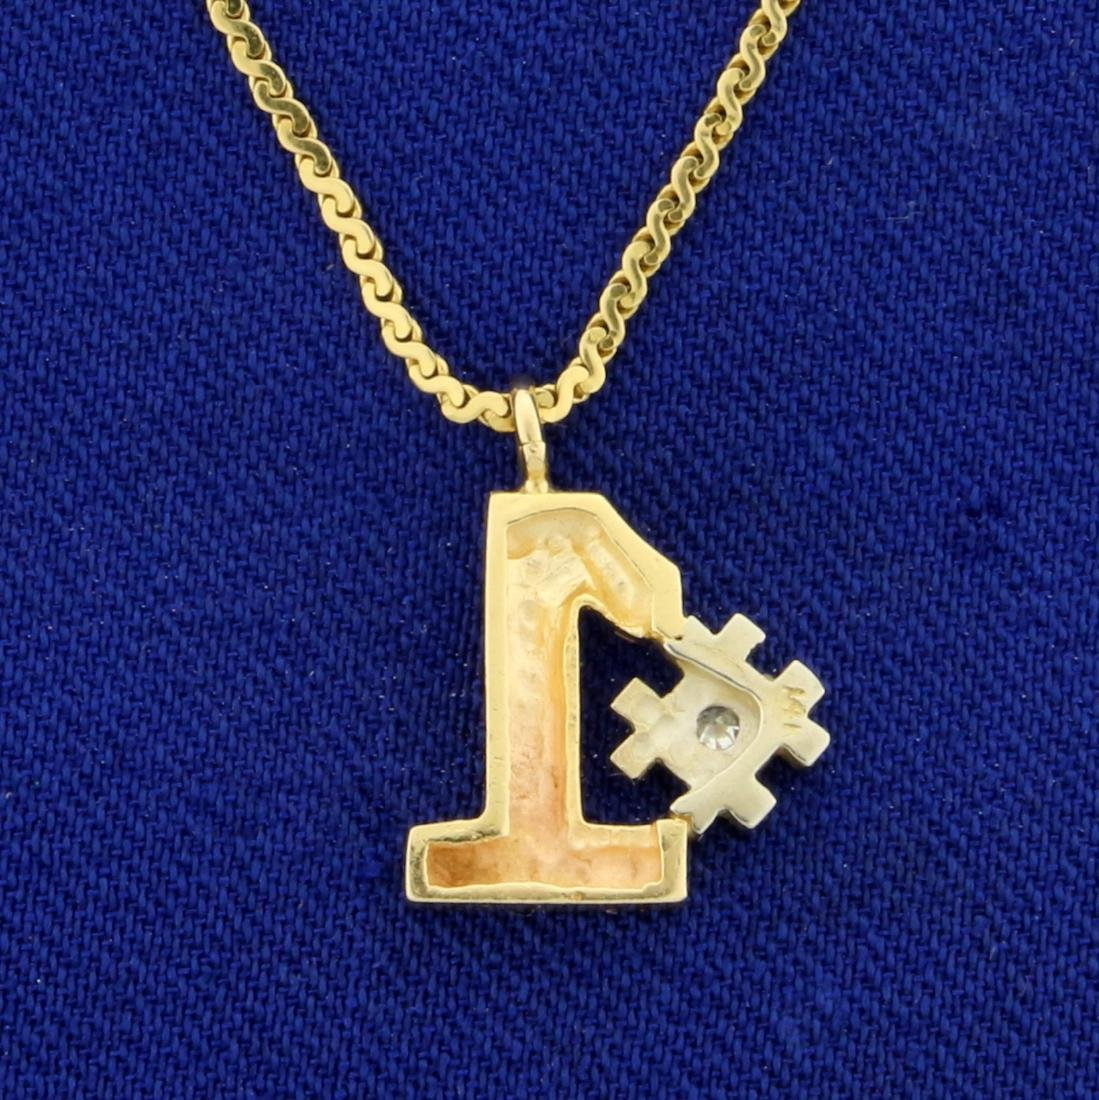 Italian Made Diamond #1 Pendant and S-Link Chain in 14K - 2